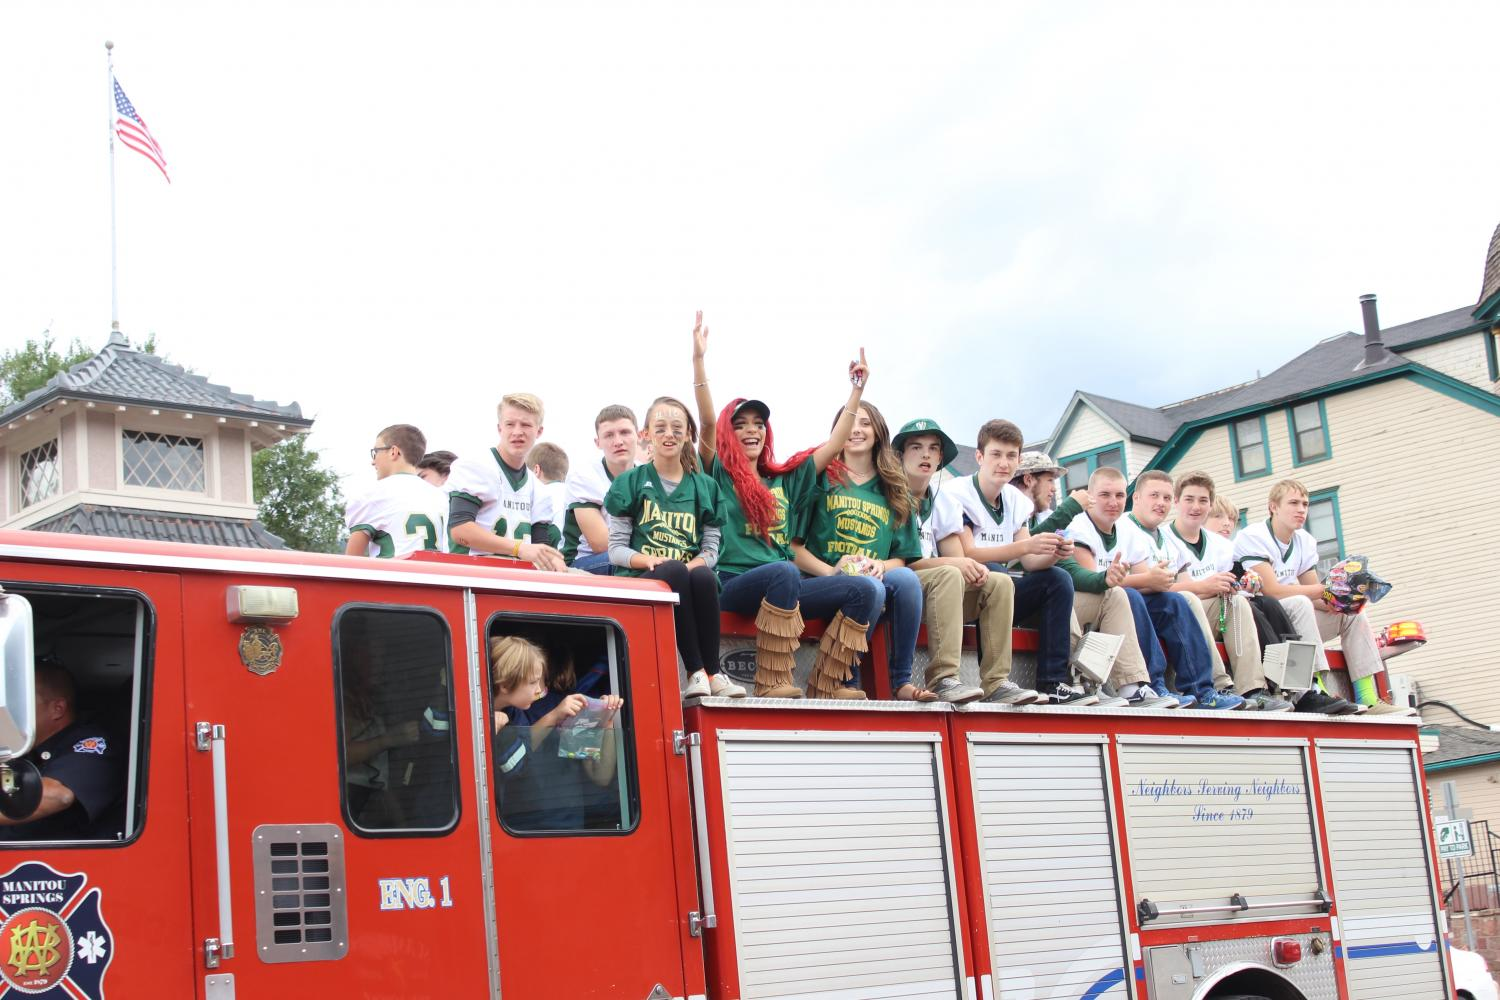 Alaura+Lopez+%2812%29+and+Ellery+Lane+%2811%29+support+the+football+team+at+the+homecoming+parade+%282016%29.+